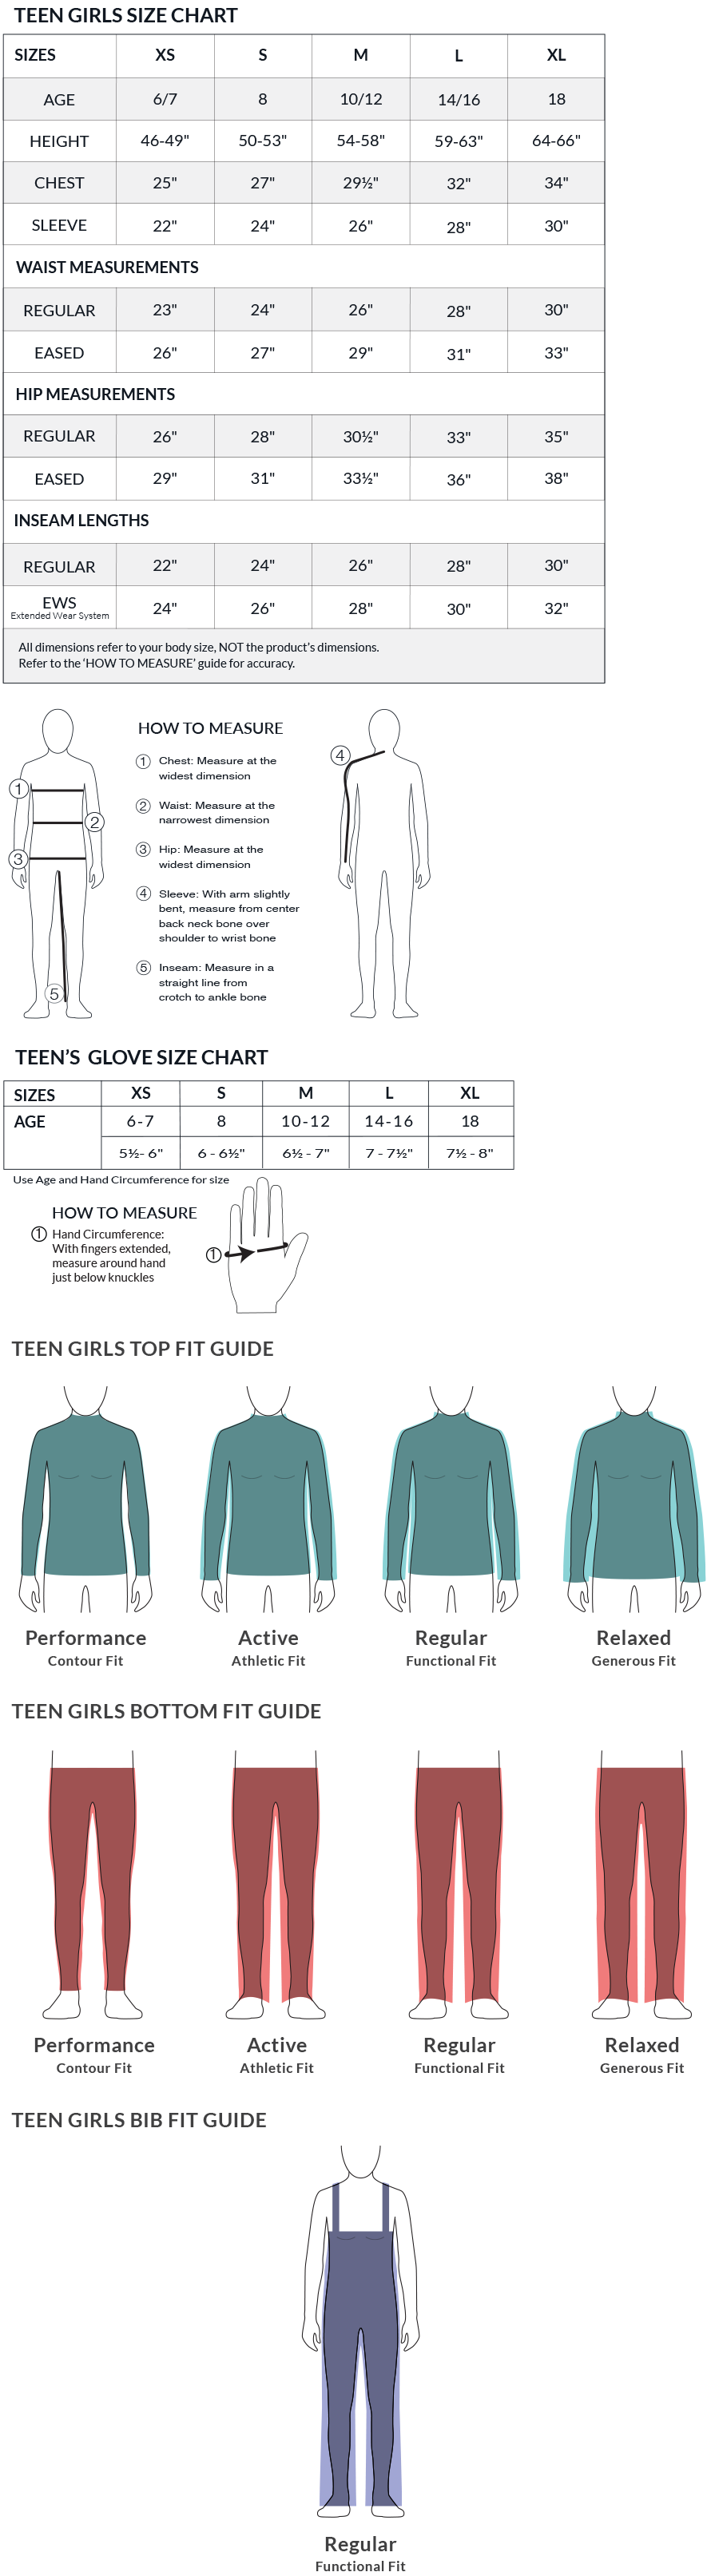 Teen Girl's Sizing Chart and Fit Guide